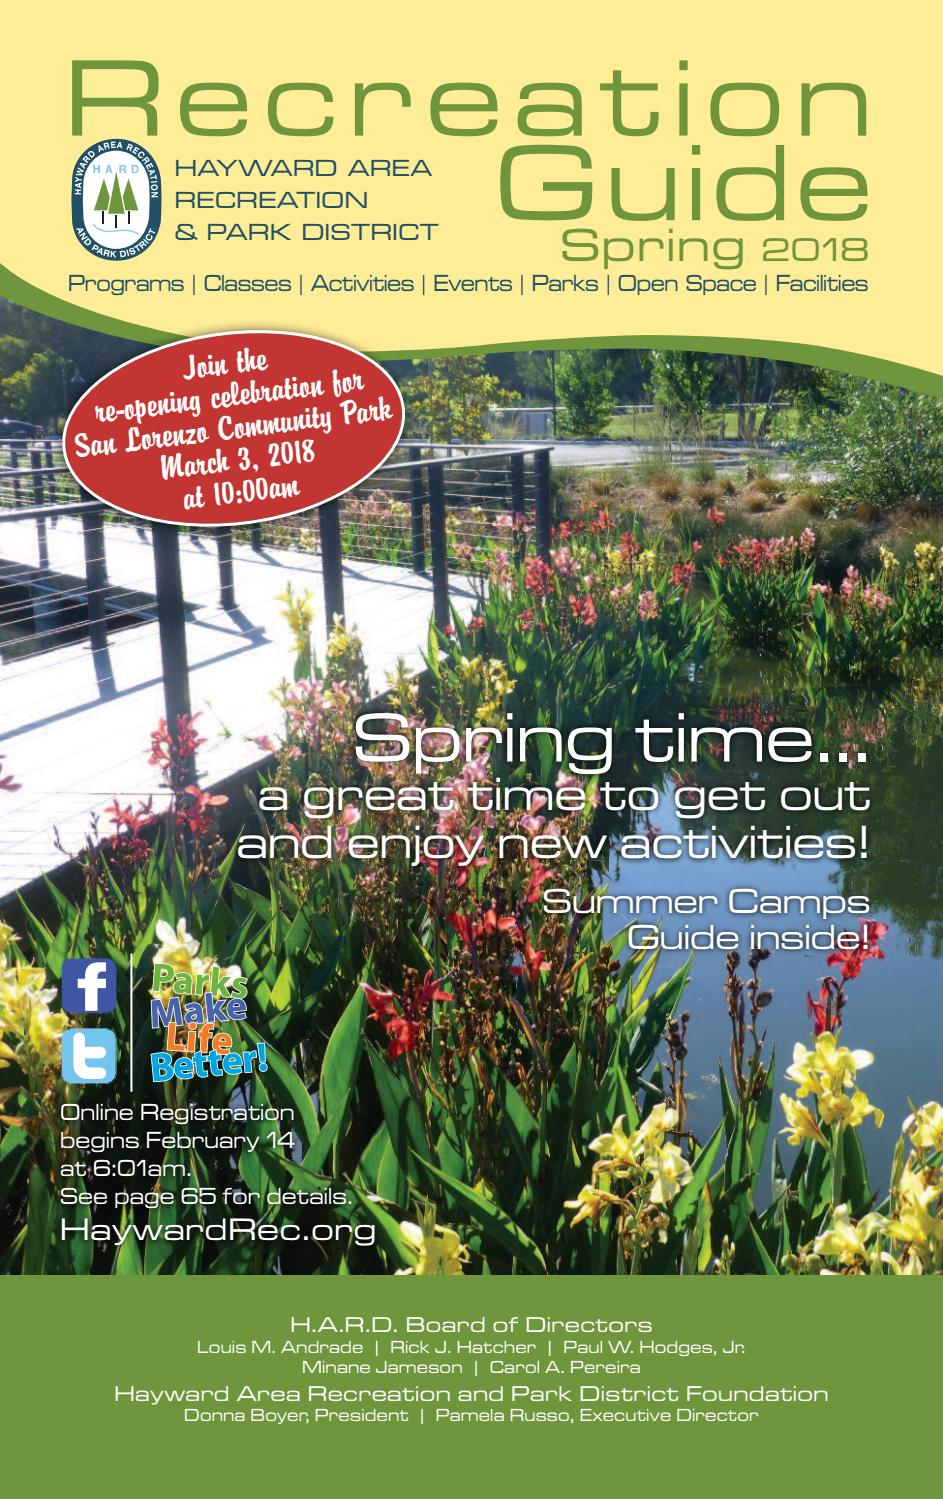 aa5c5ad45e4a Hayward Recreation and Park District Guide Spring 2018 by Nicole Roa - issuu